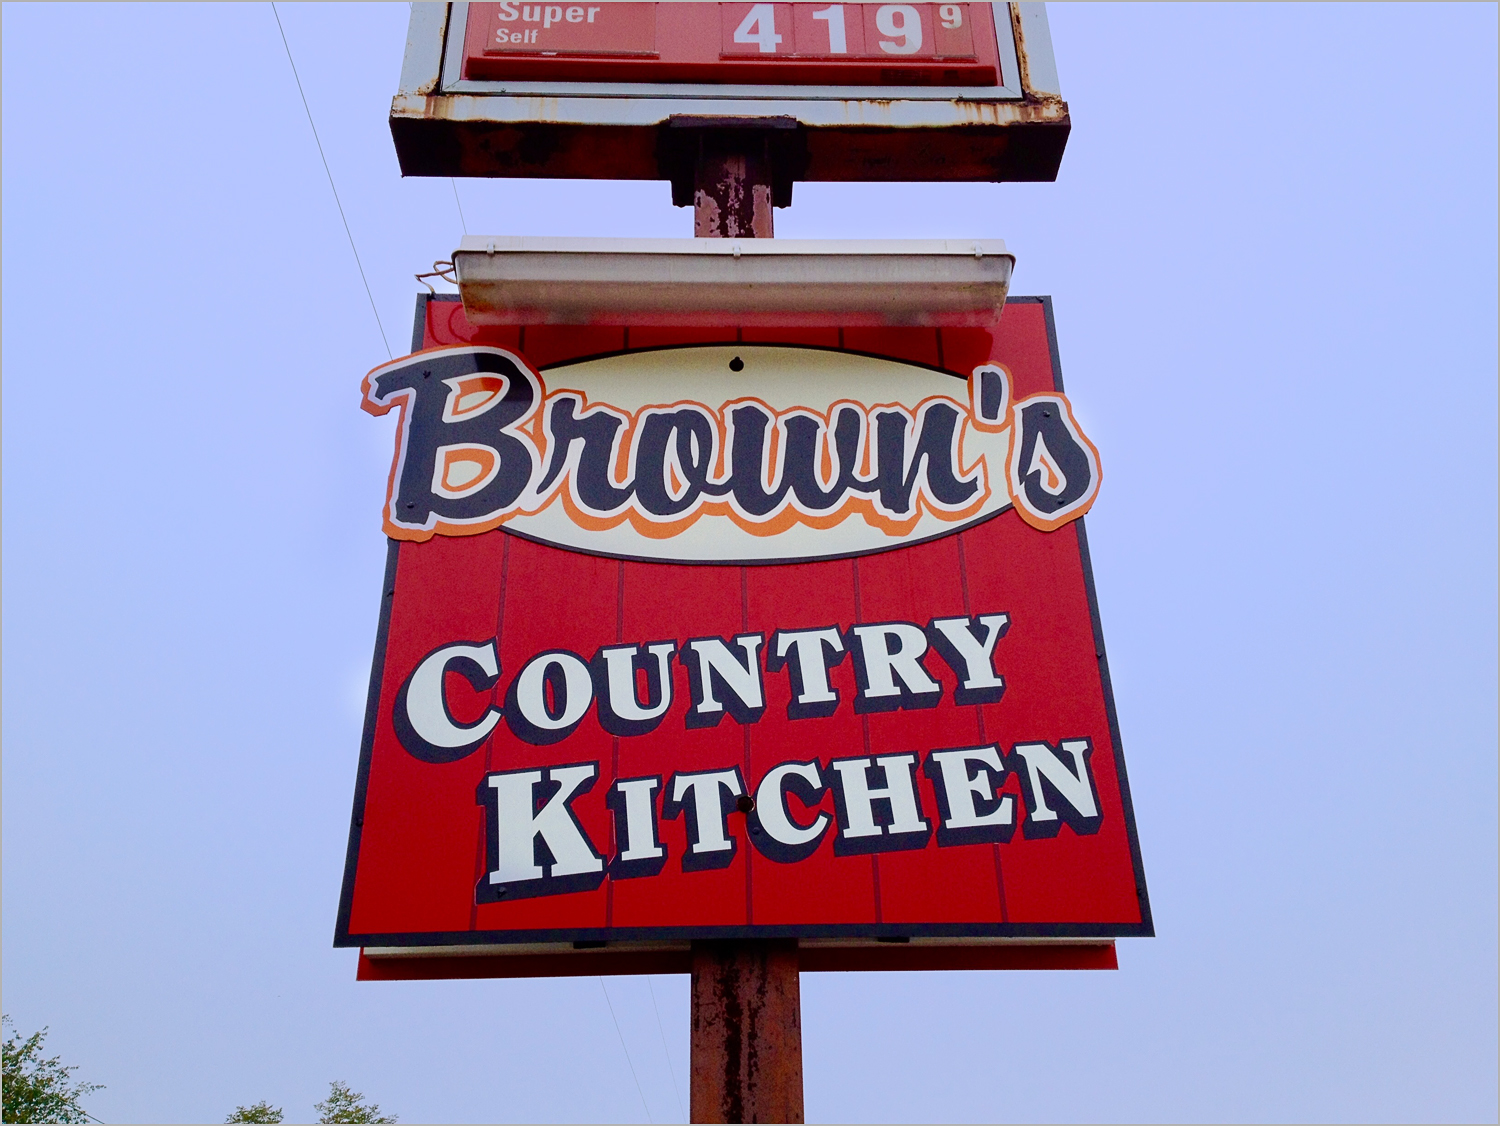 Brown's Country Kitchen, the place to eat in Portersville, PA